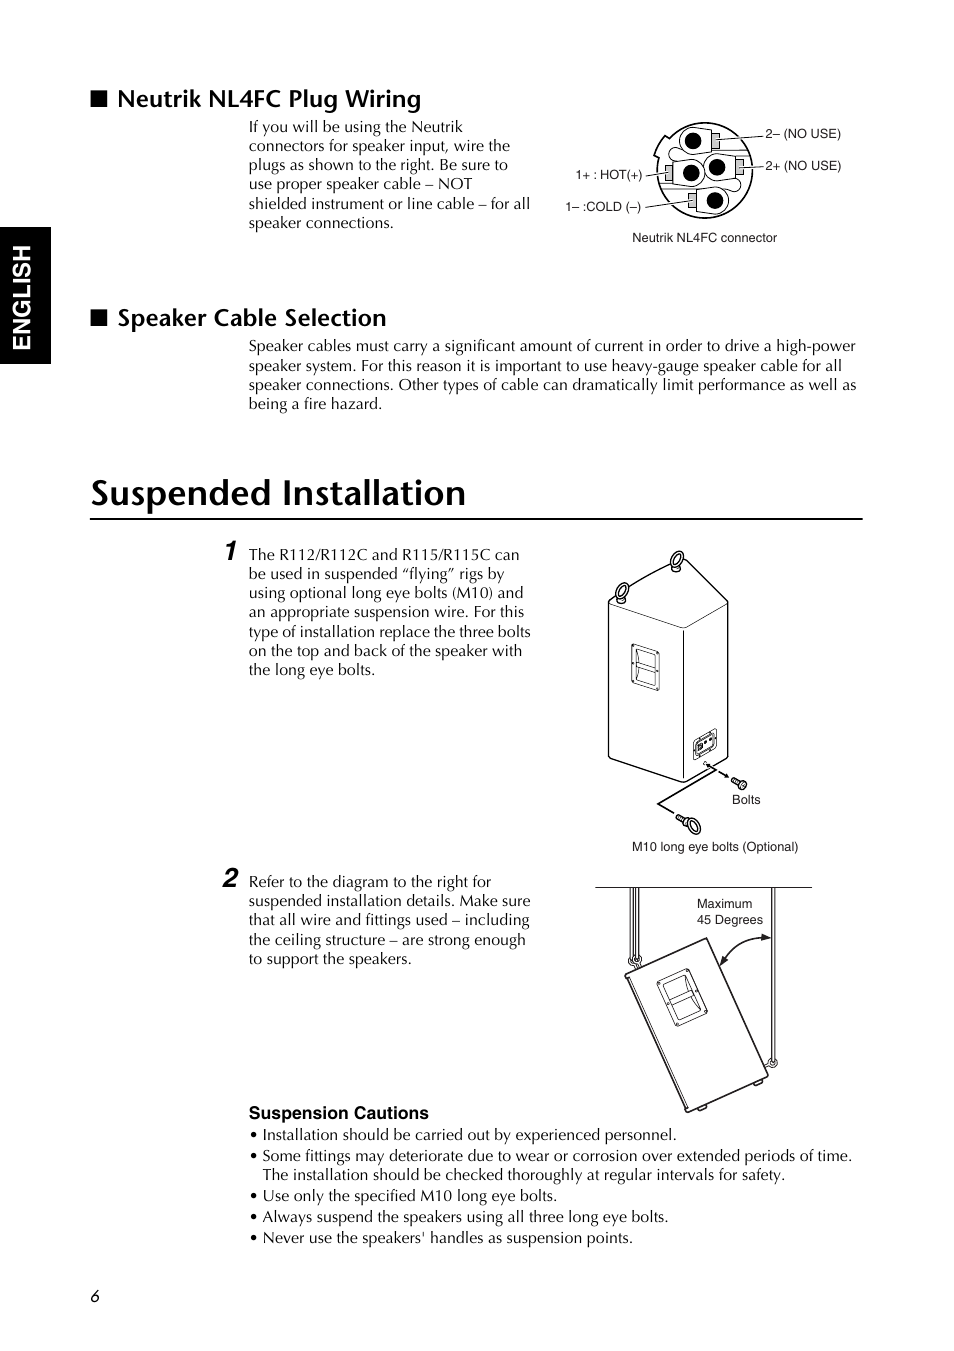 Neutrik Nl4fc Plug Wiring Speaker Cable Selection Suspended Diagram Installation Yamaha R112 User Manual Page 6 9